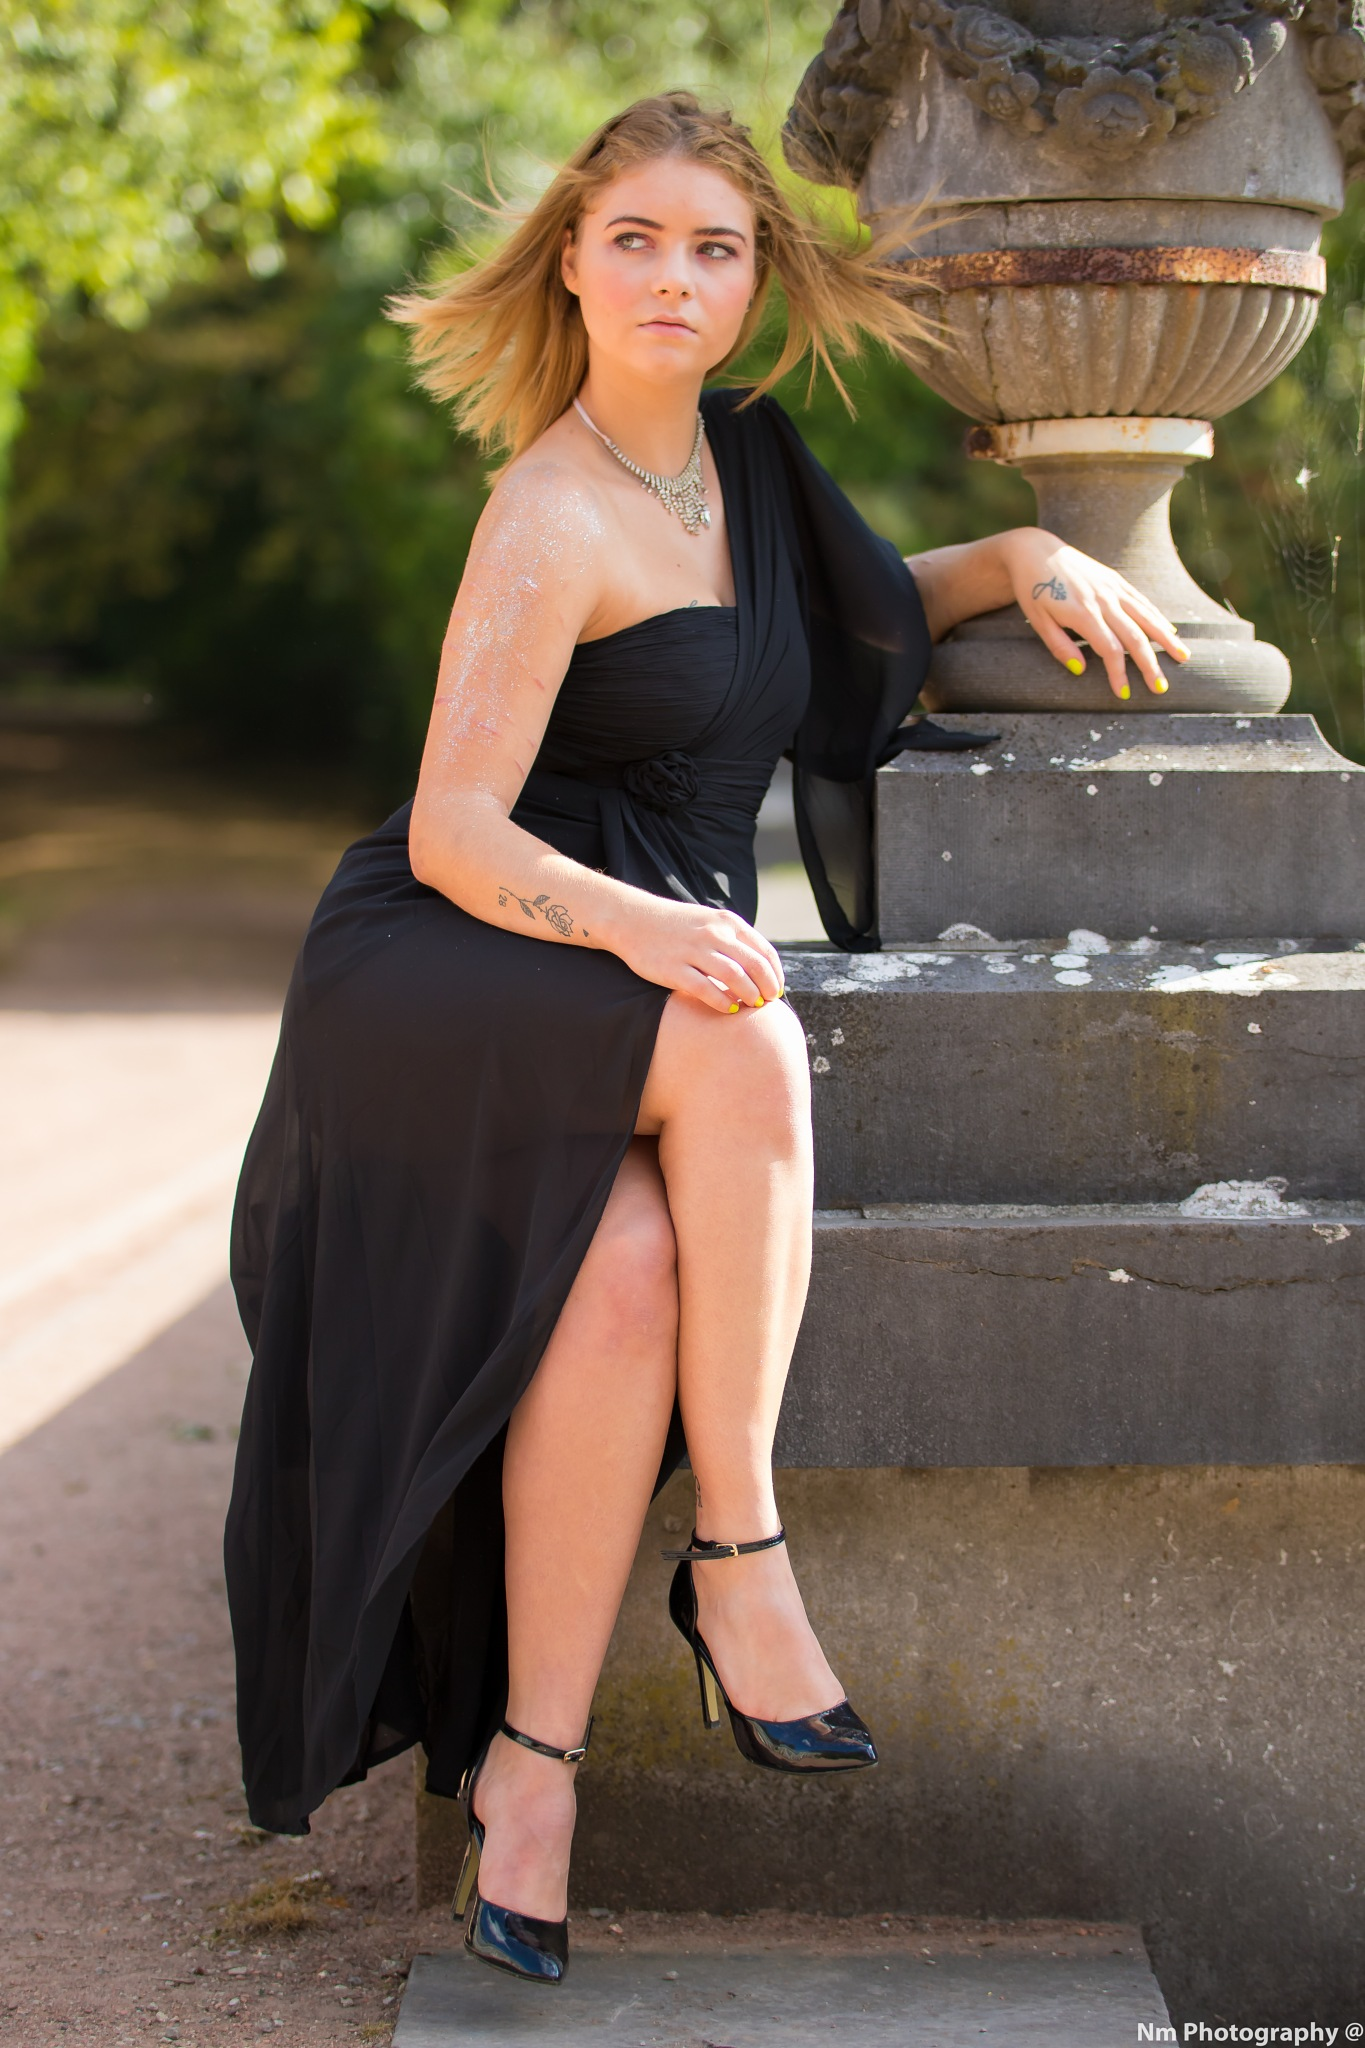 Evening Dress by nmphotography